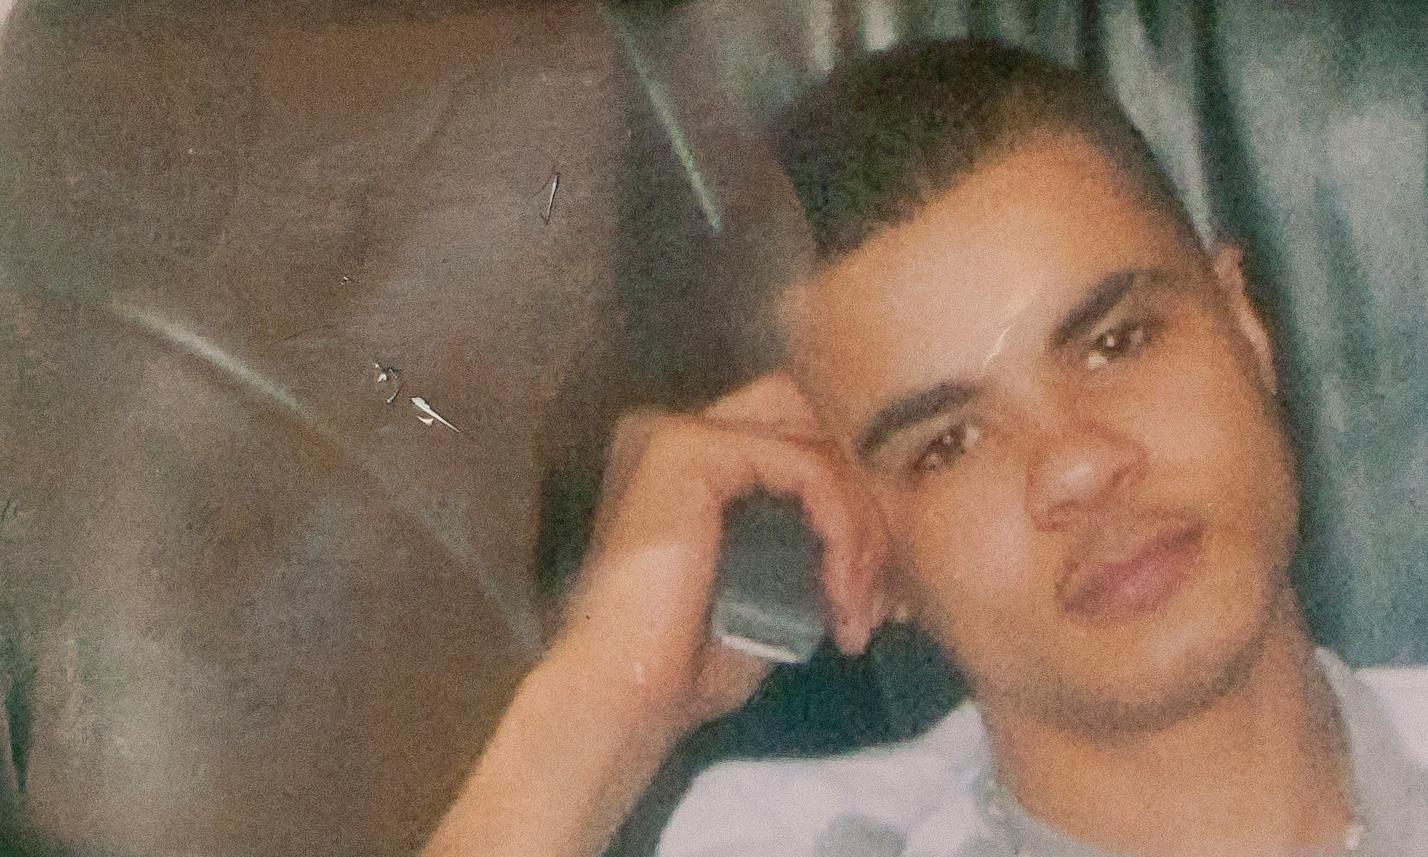 Mark Duggan's family lodges civil claim against Metropolitan police